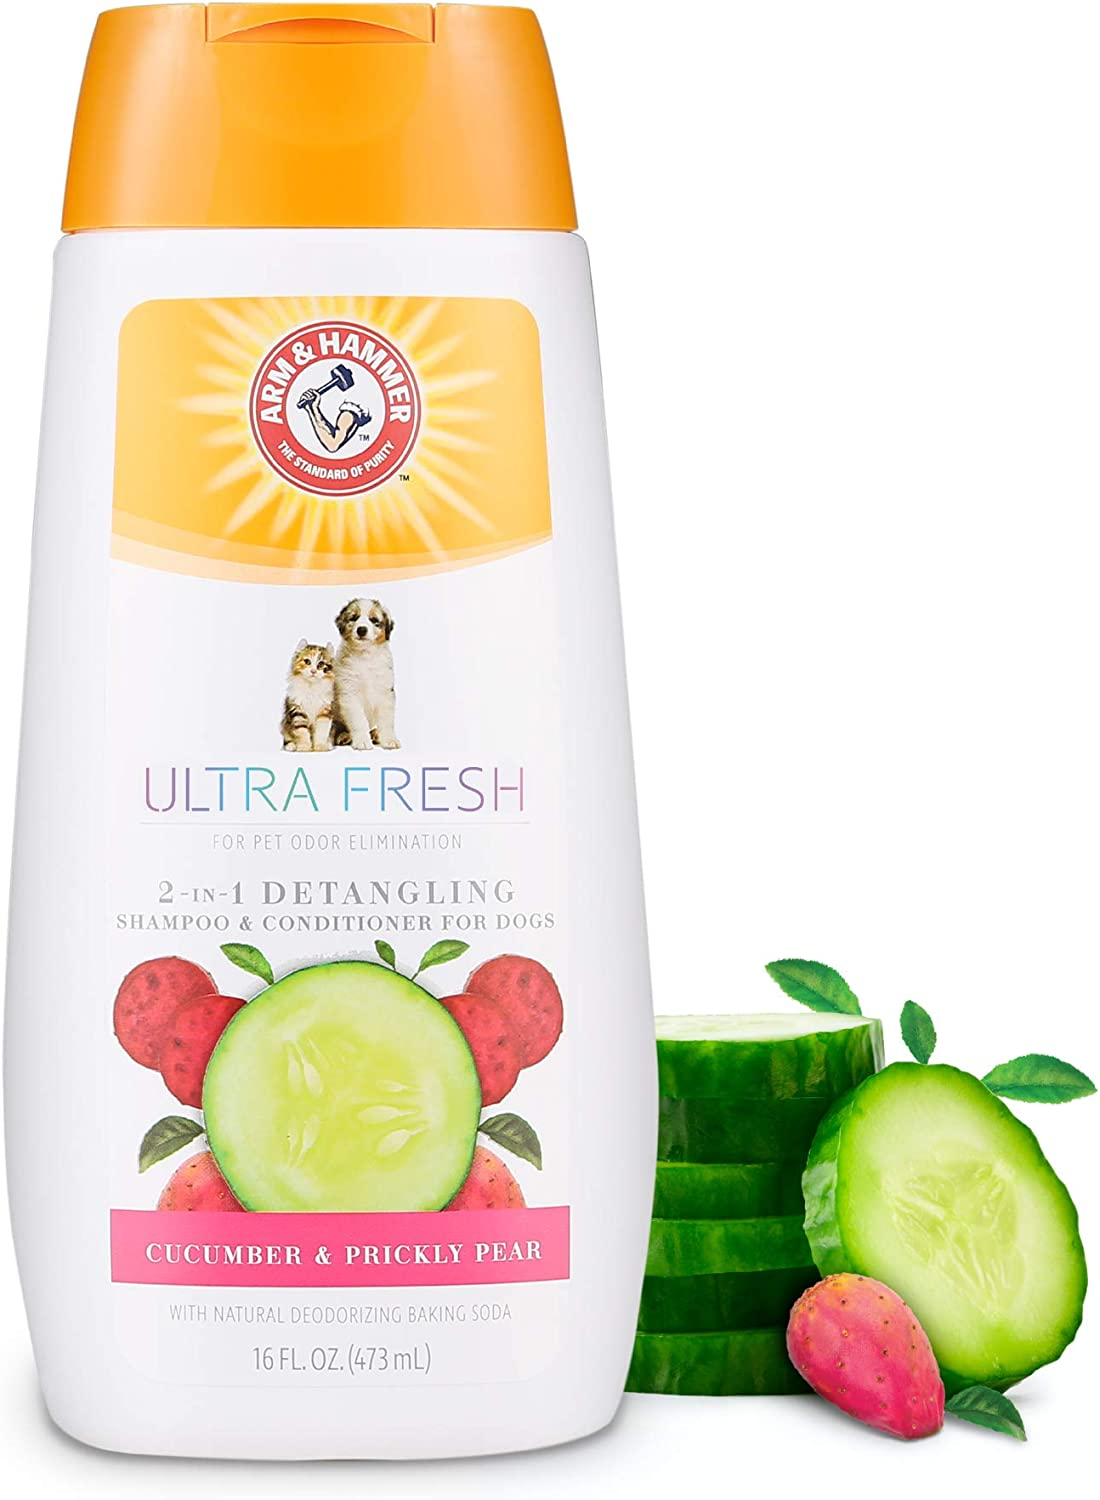 Arm & Hammer for Pets Ultra Fresh Shampoos, Conditioners, and Sprays for Dogs | Arm & Hammer Baking Soda Neutralizes Bad Odors for an Advanced Clean | Great Smelling Dog Shampoo